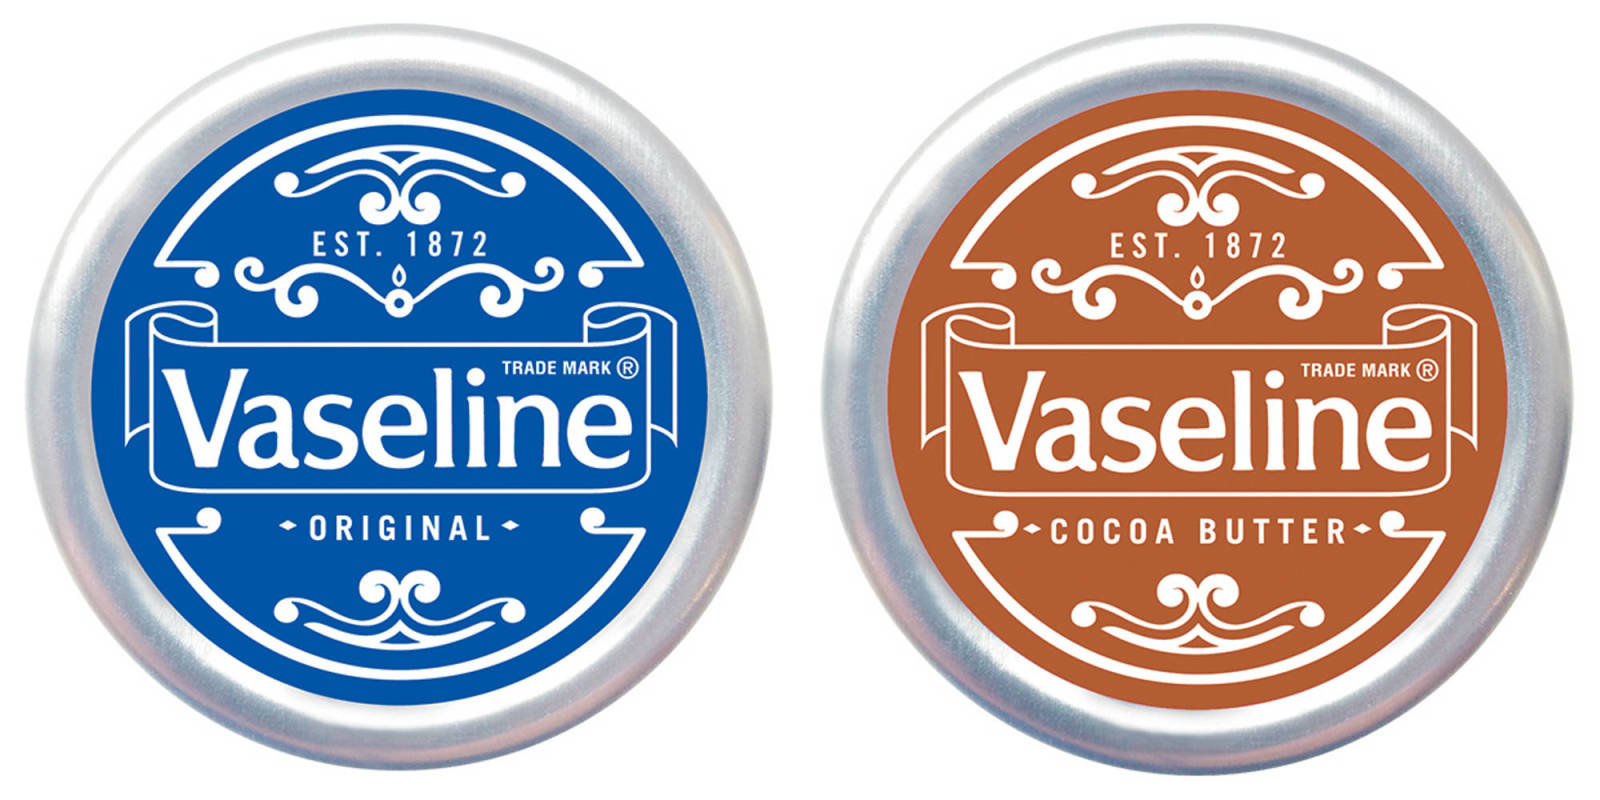 is vaseline a safe anal lube